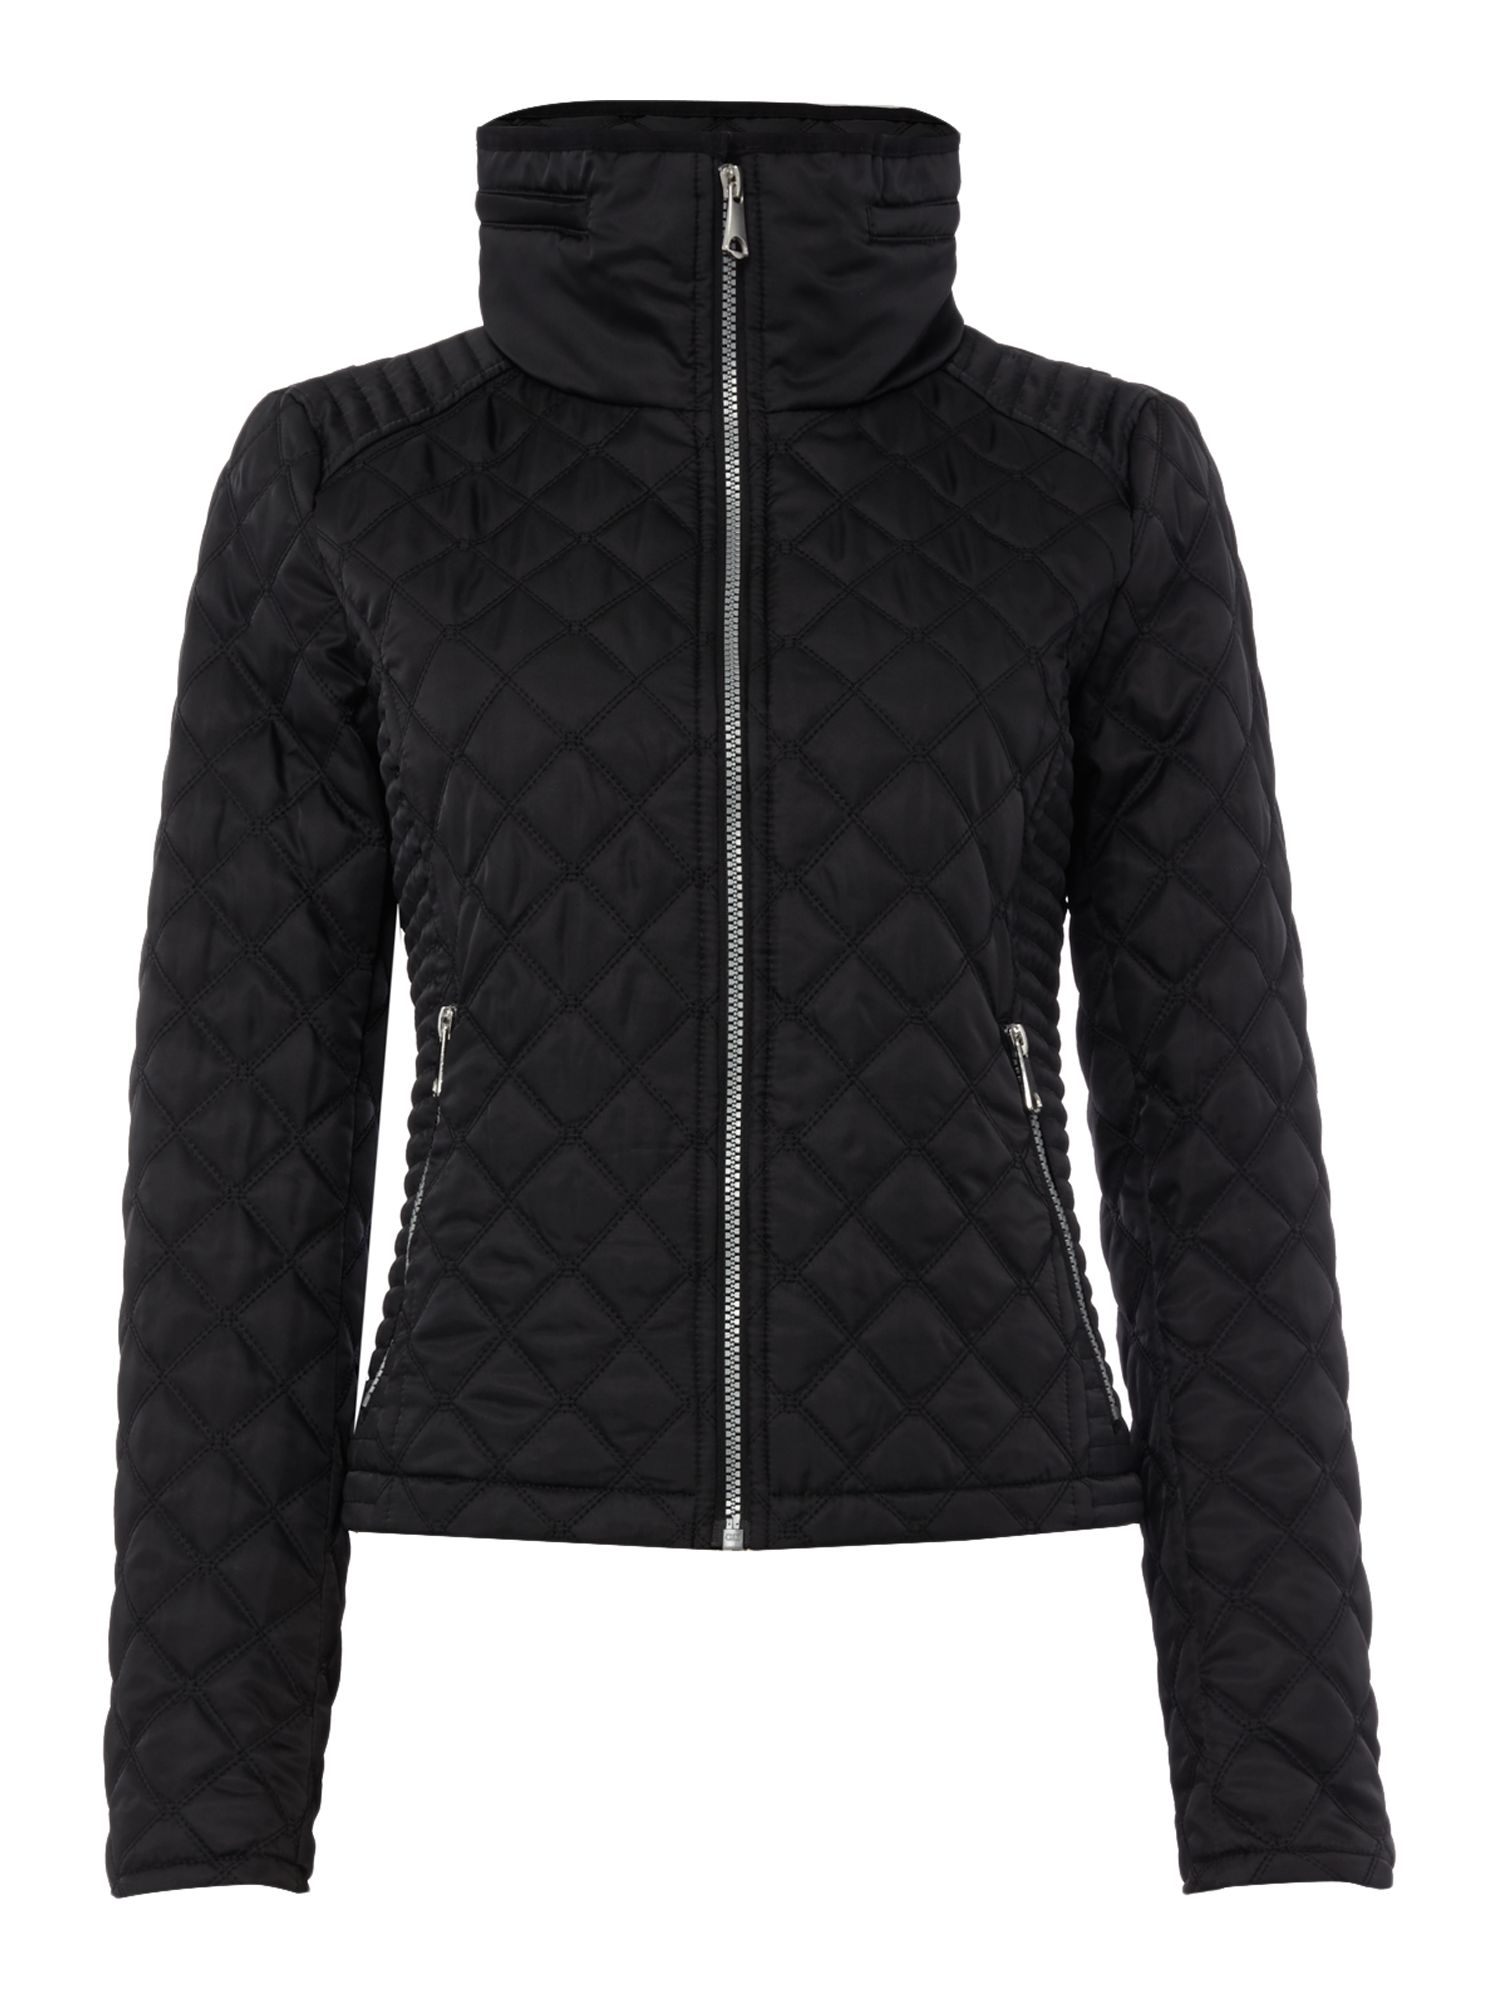 Andrew Marc Quilted jacket with zip detail sleeve, Black